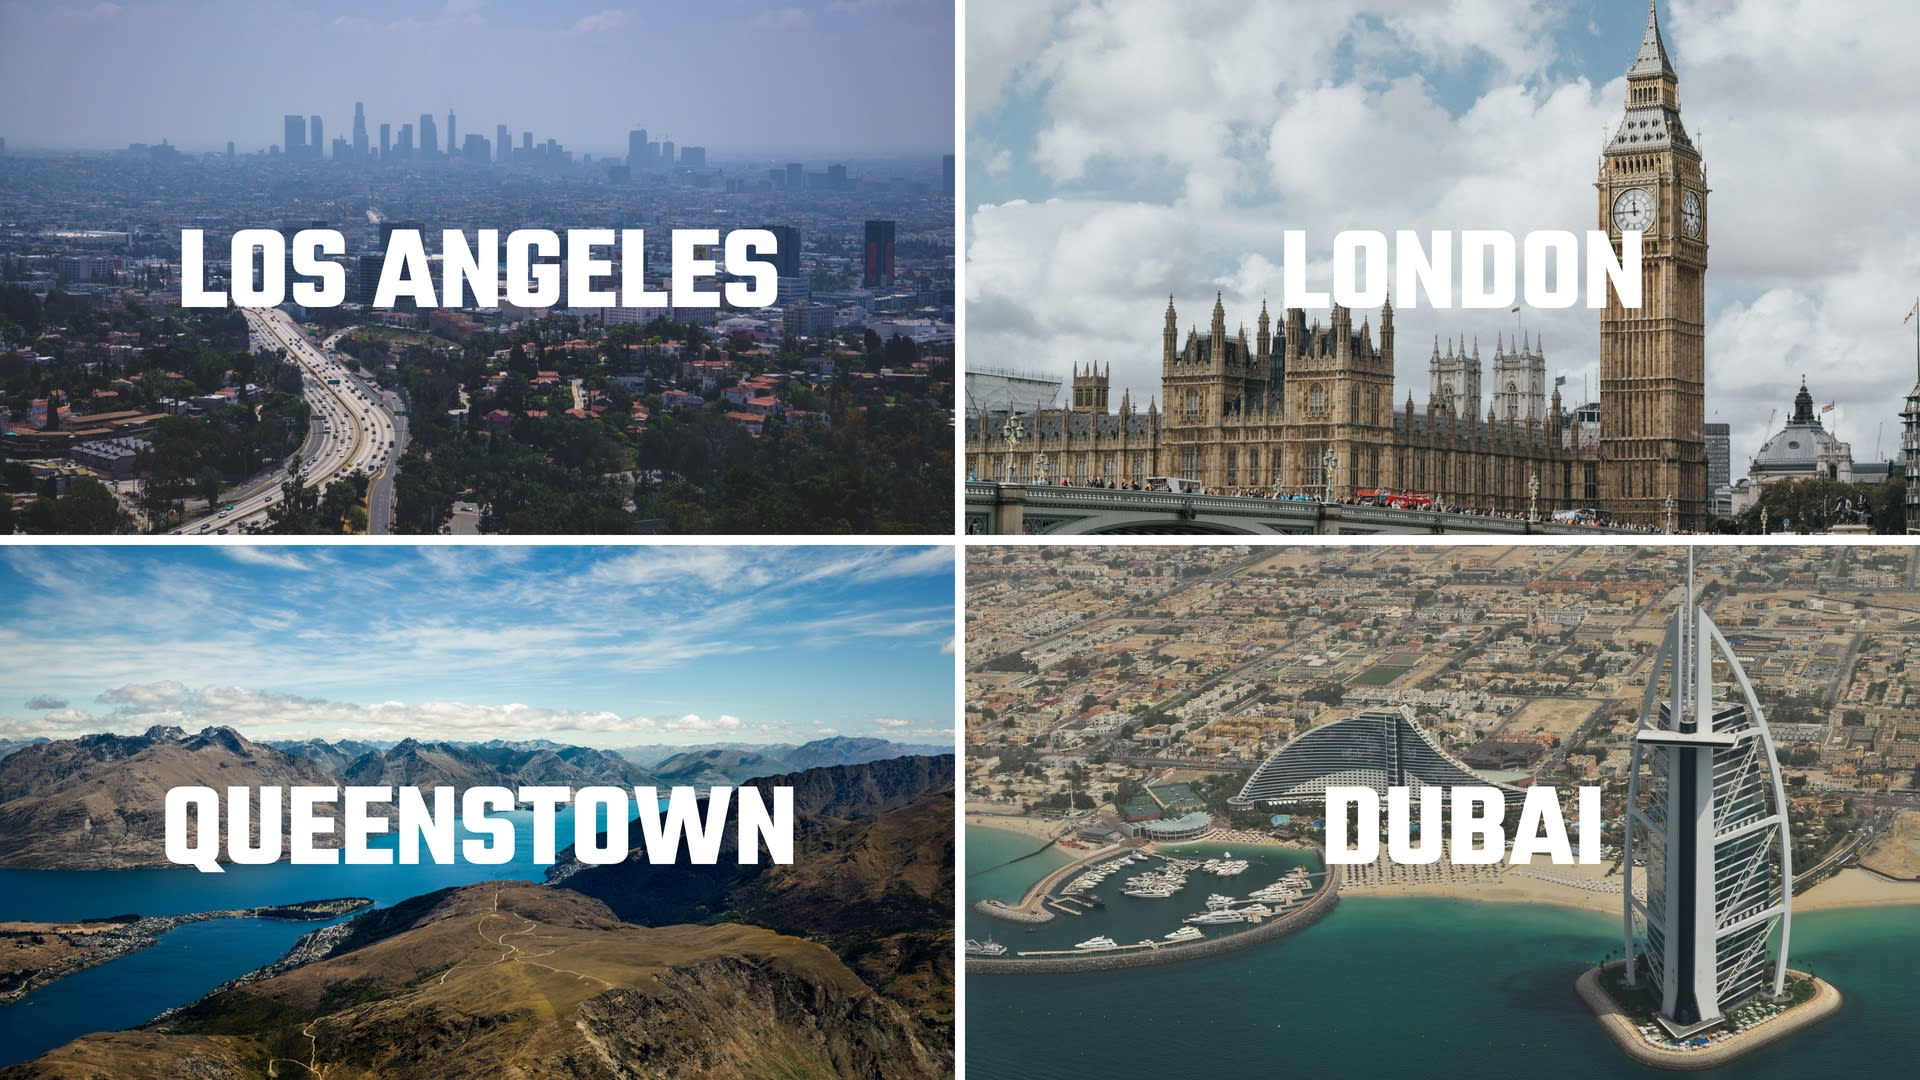 doble panalo klook win a trip to los angeles london queenstown dubai